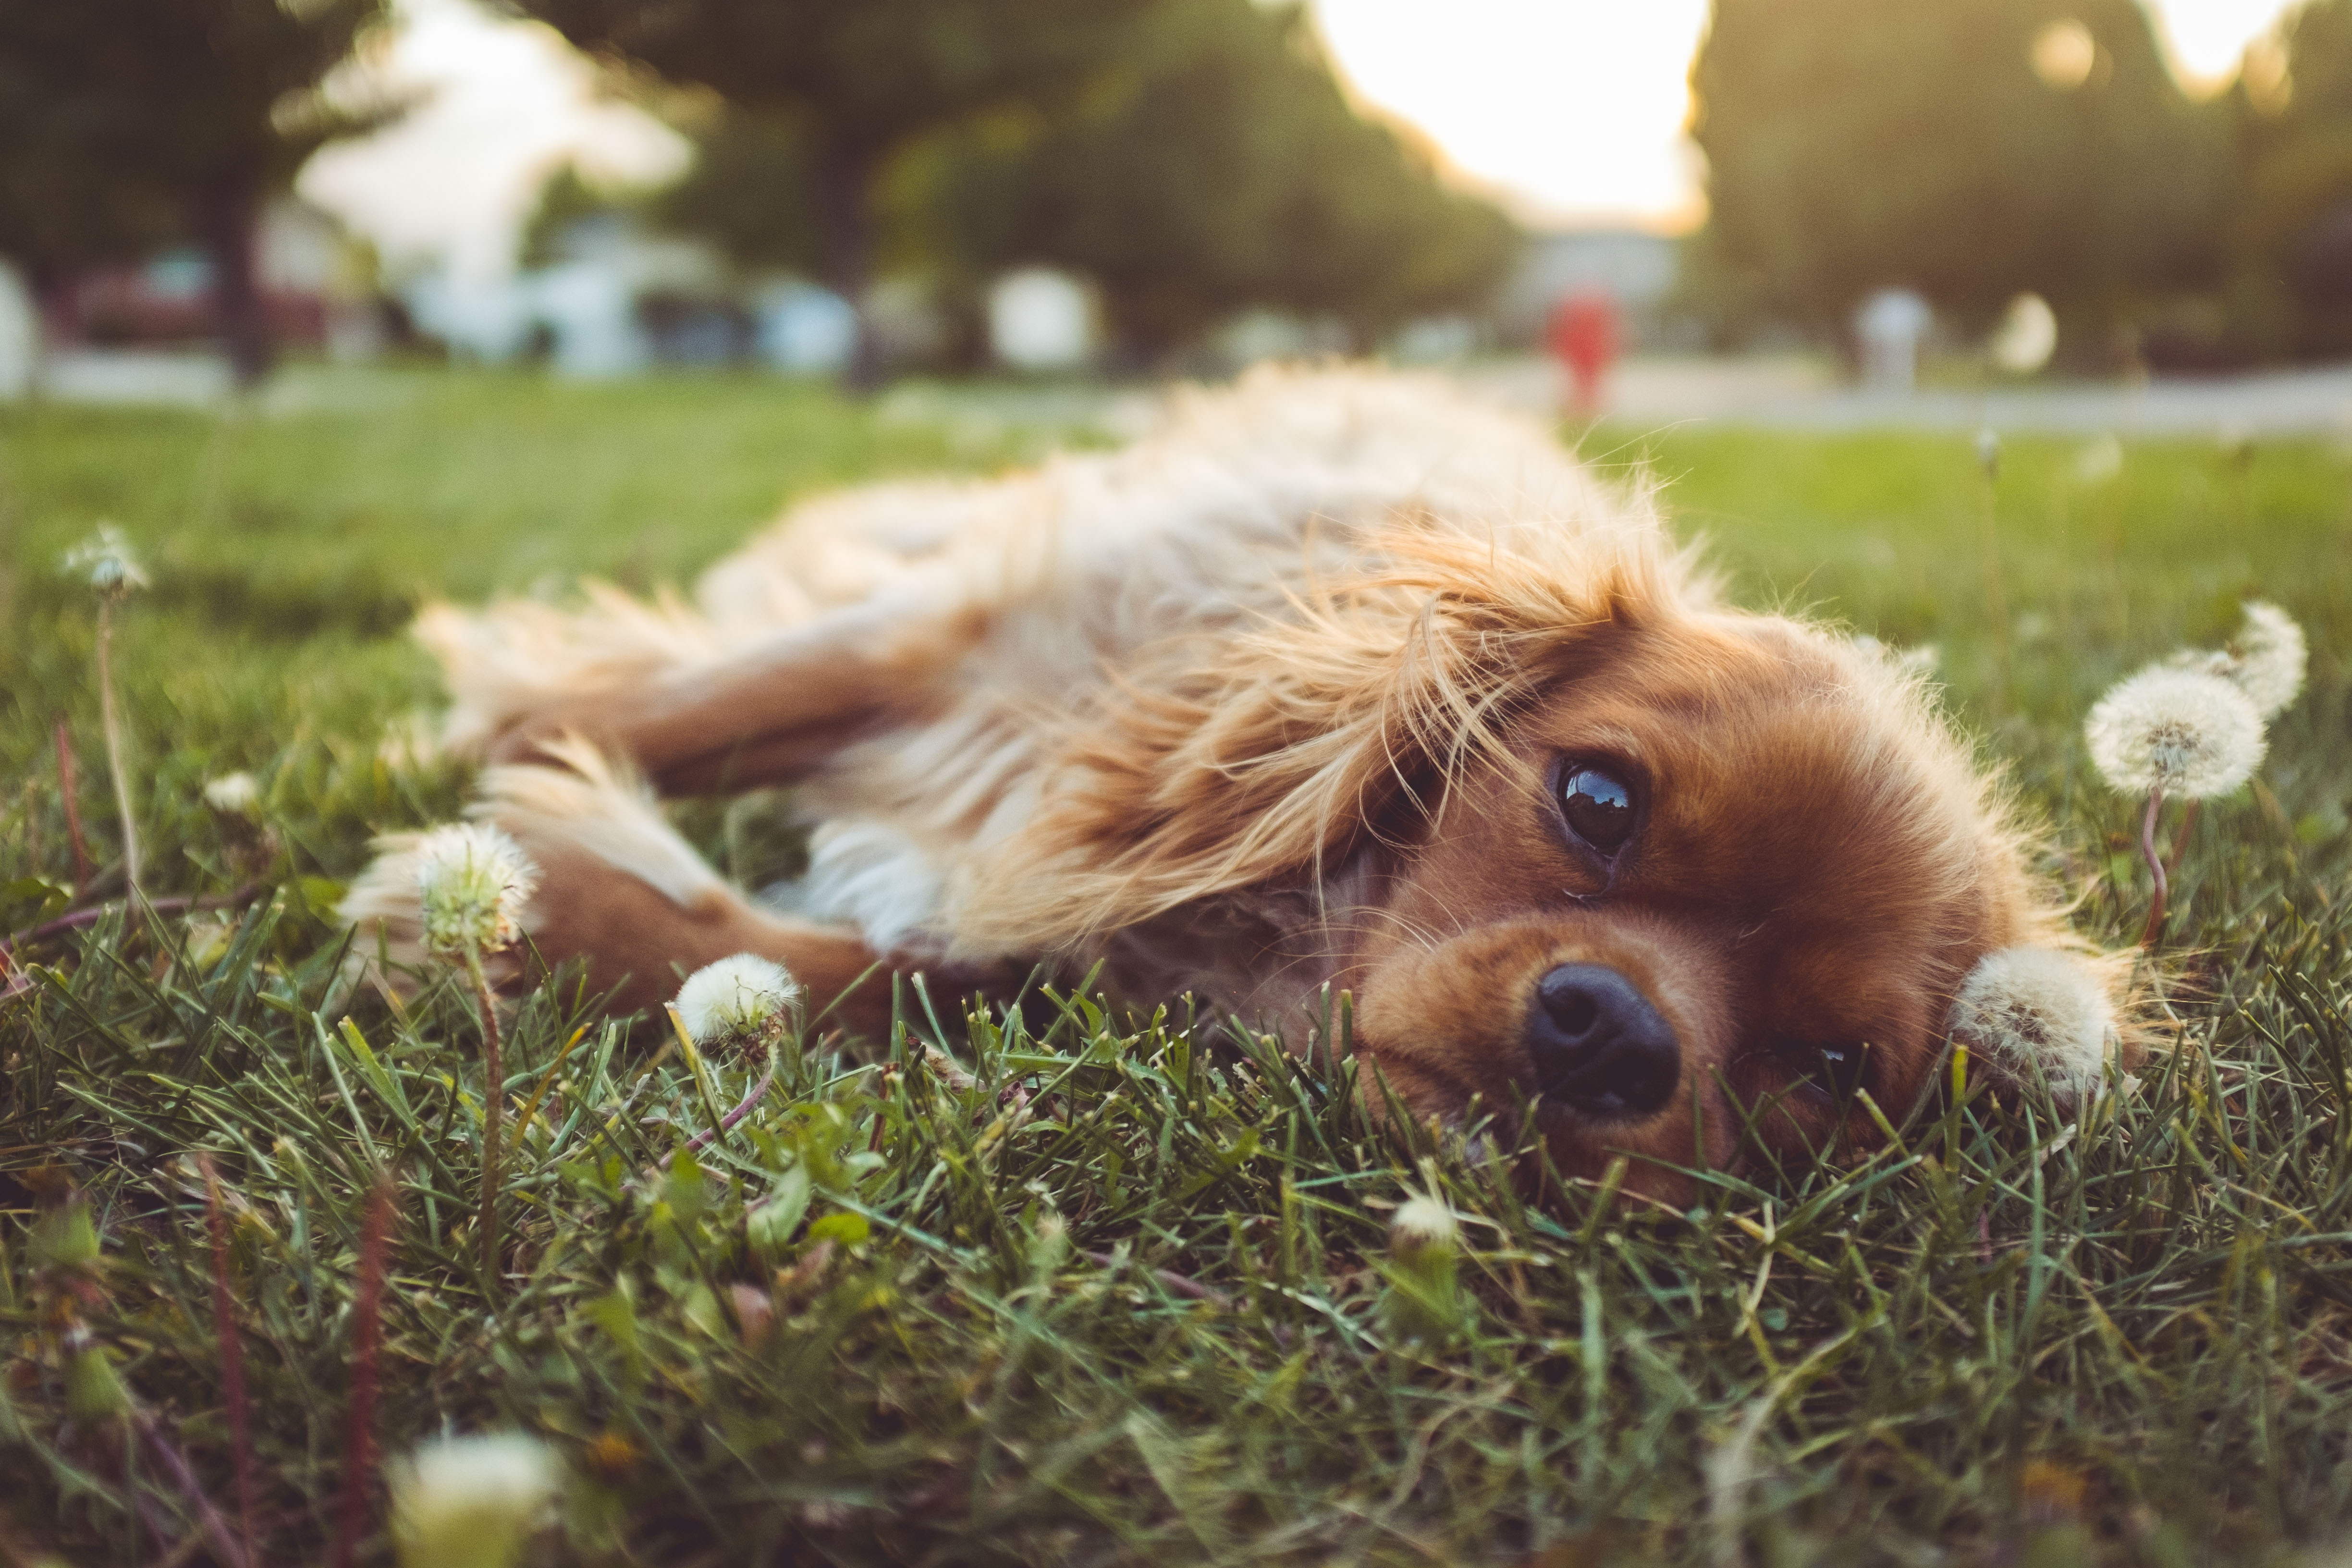 Image: puppy lying on grass surrounded by floating bubbles